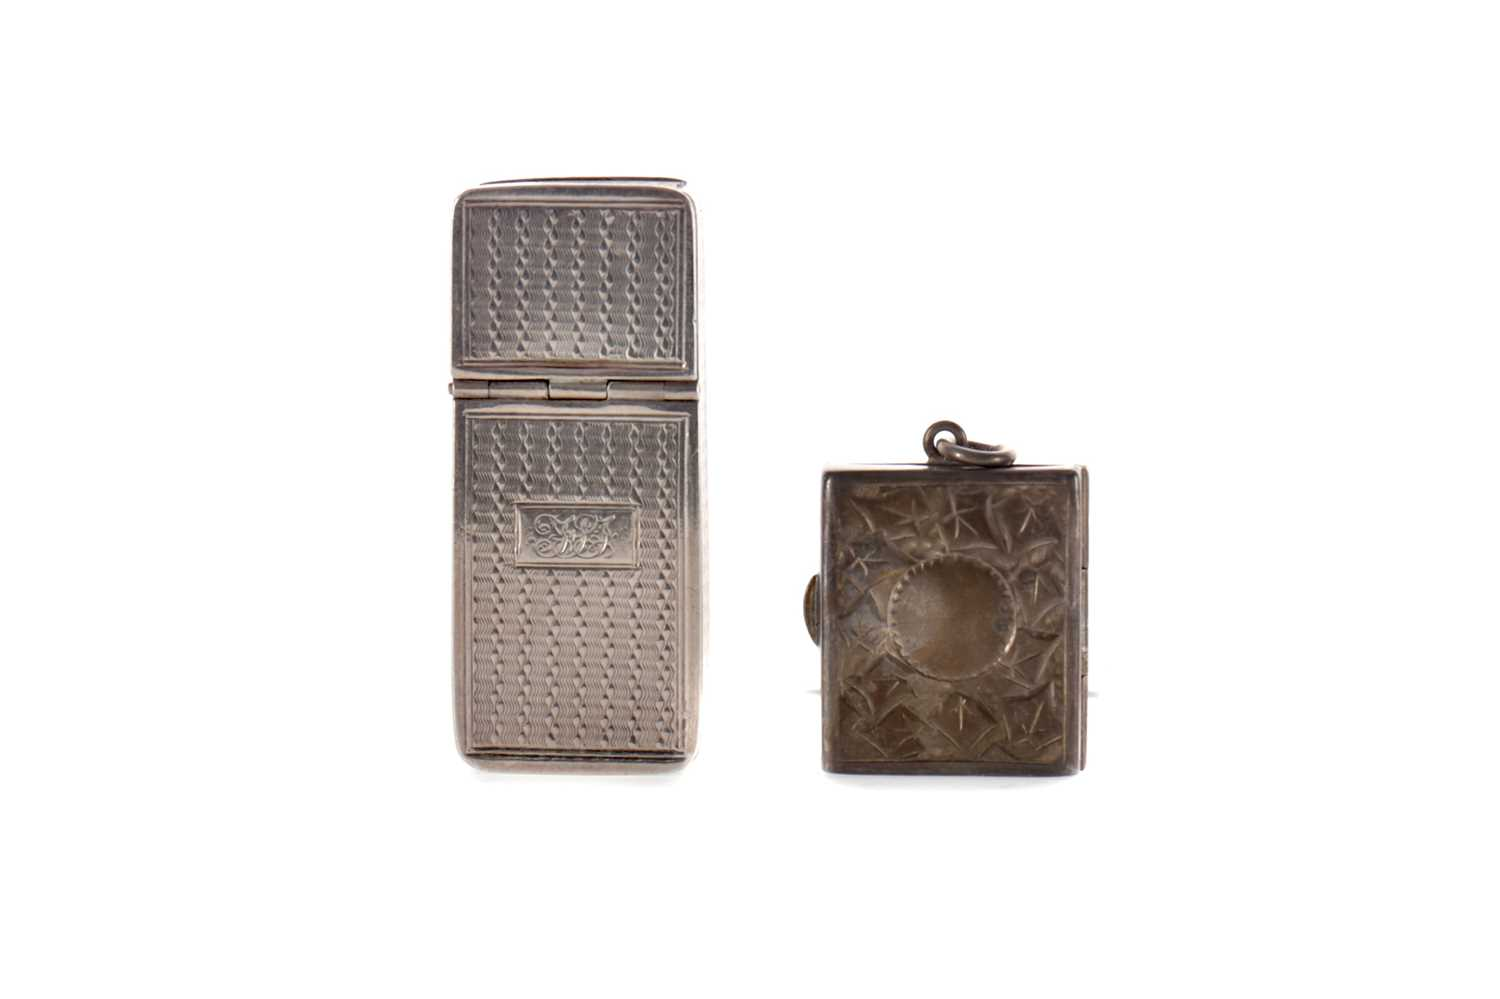 Lot 433 - A VICTORIAN SILVER PILL BOX AND A SILVER STAMP BOX